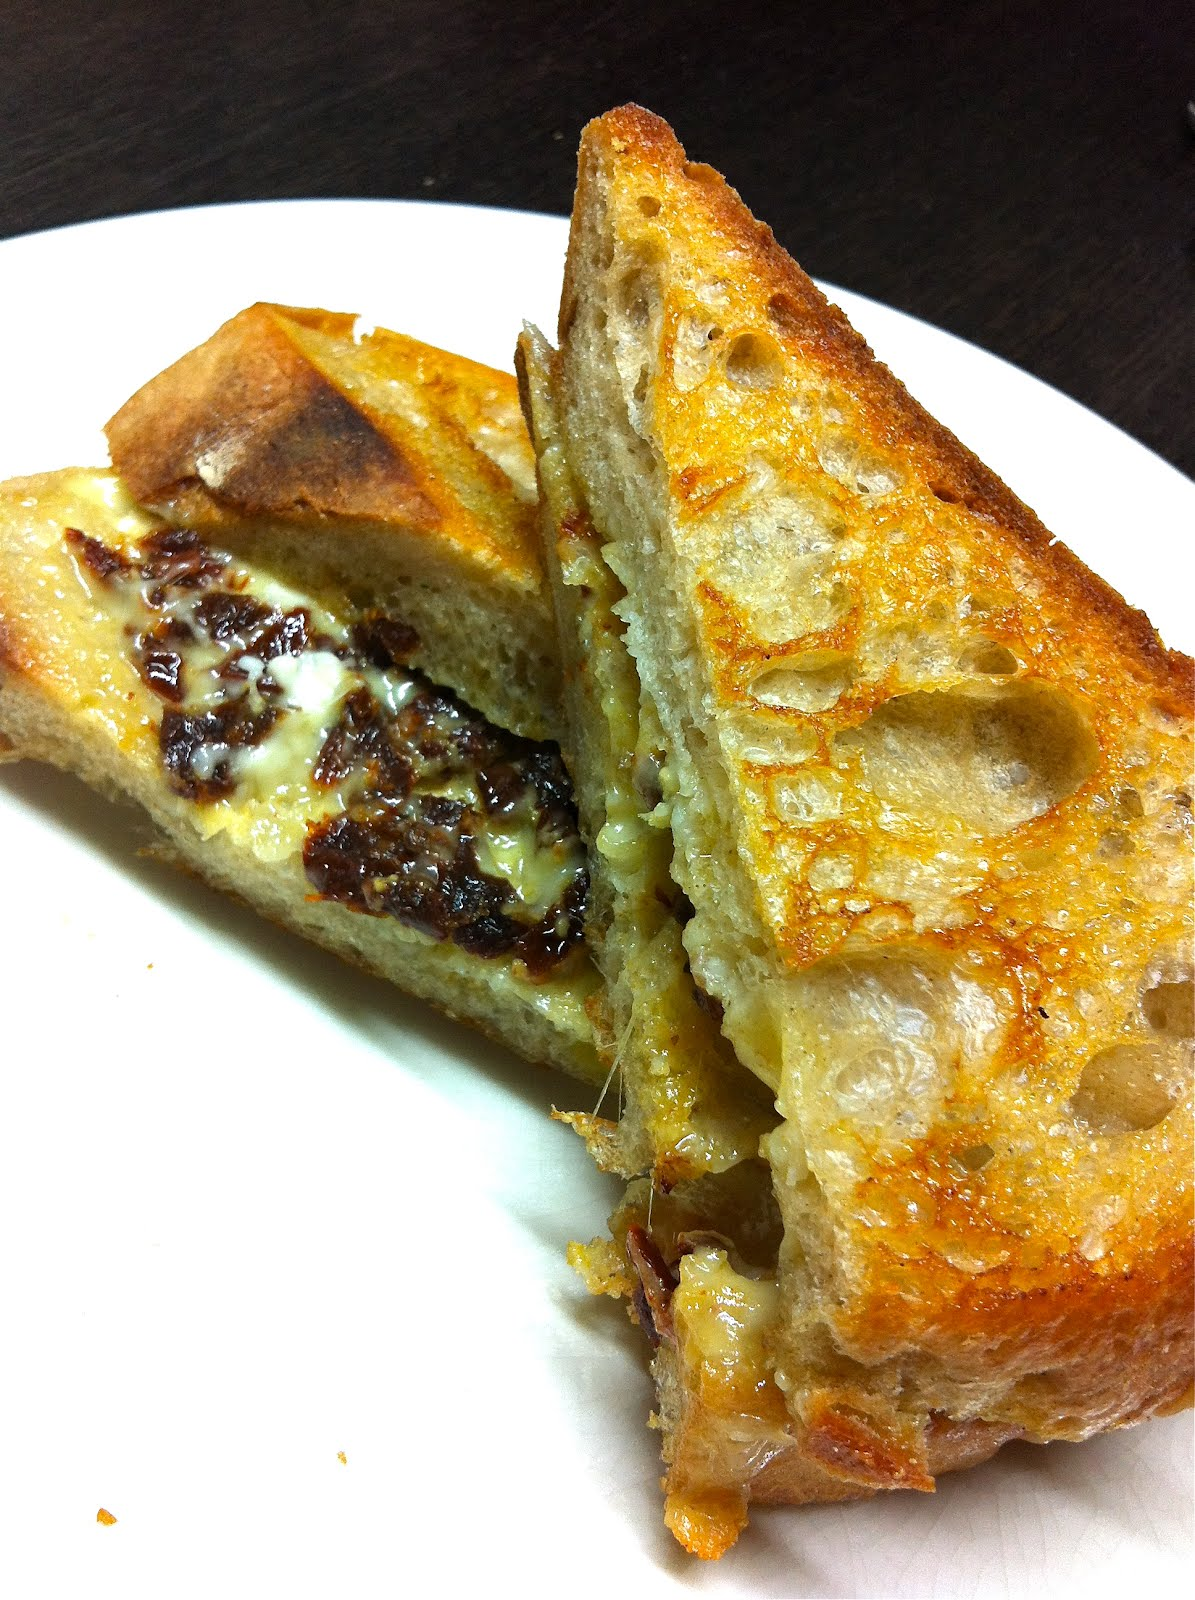 ... 041 Grilled Cheese Sandwich: Edam with Sun-Dried Tomatoes on Sourdough